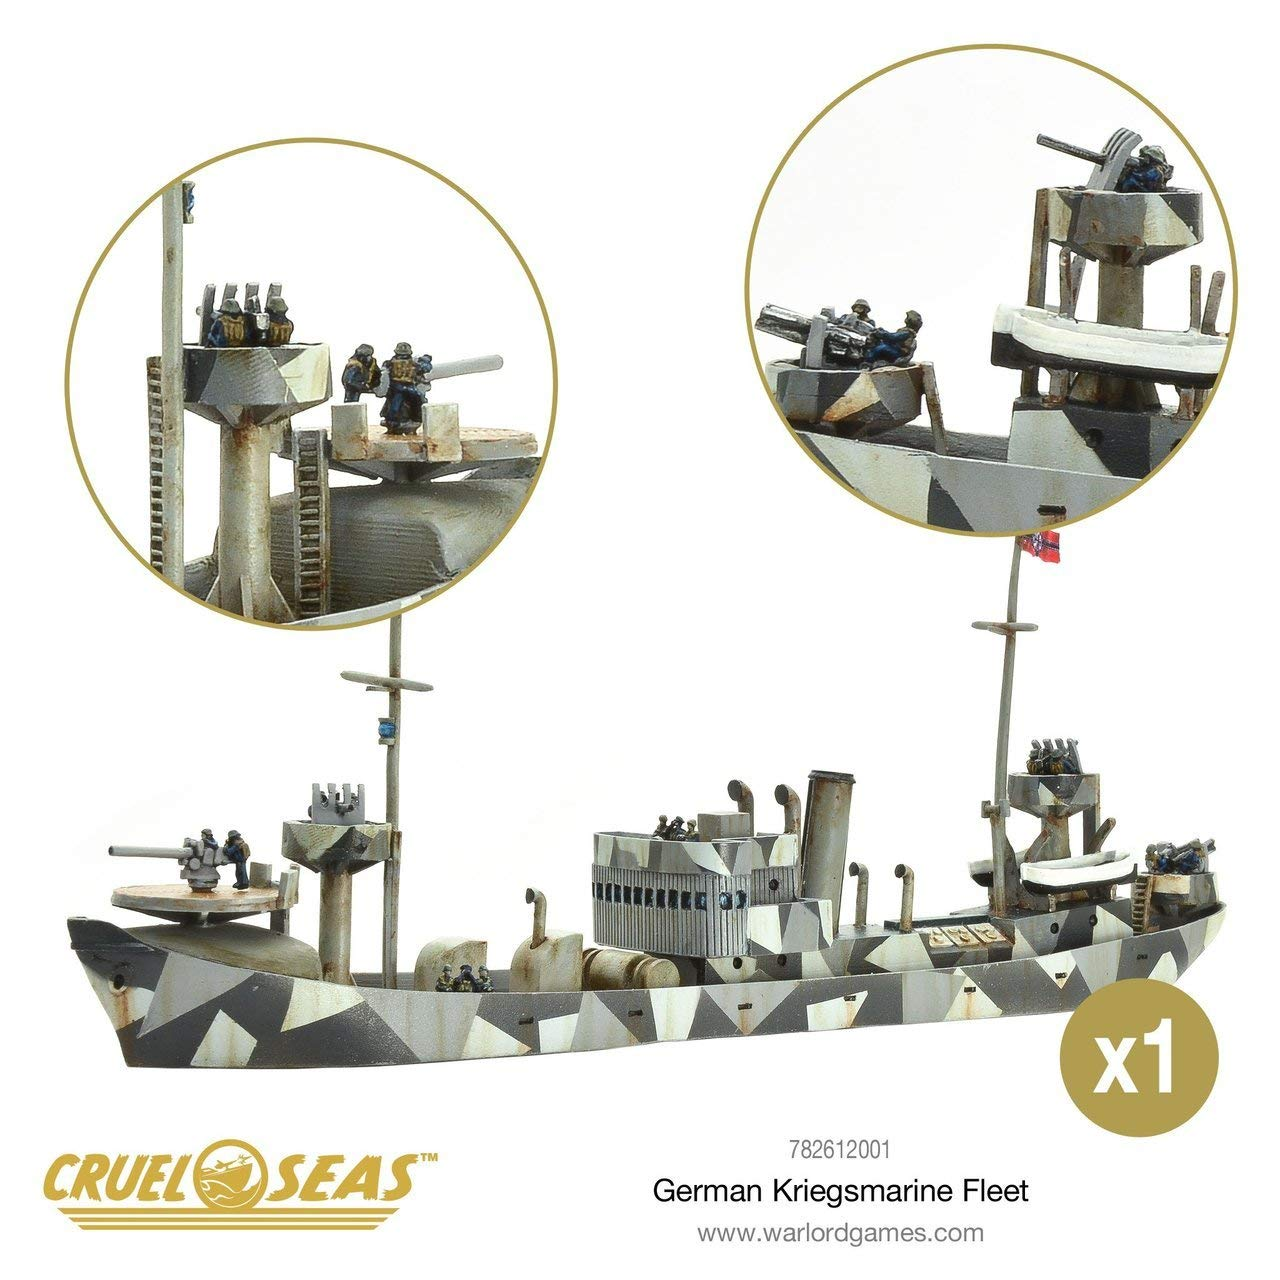 Cruel Seas German Kriegsmarine Fleet Starter Set, World War II Naval Battle Game ... by Cruel Seas (Image #5)